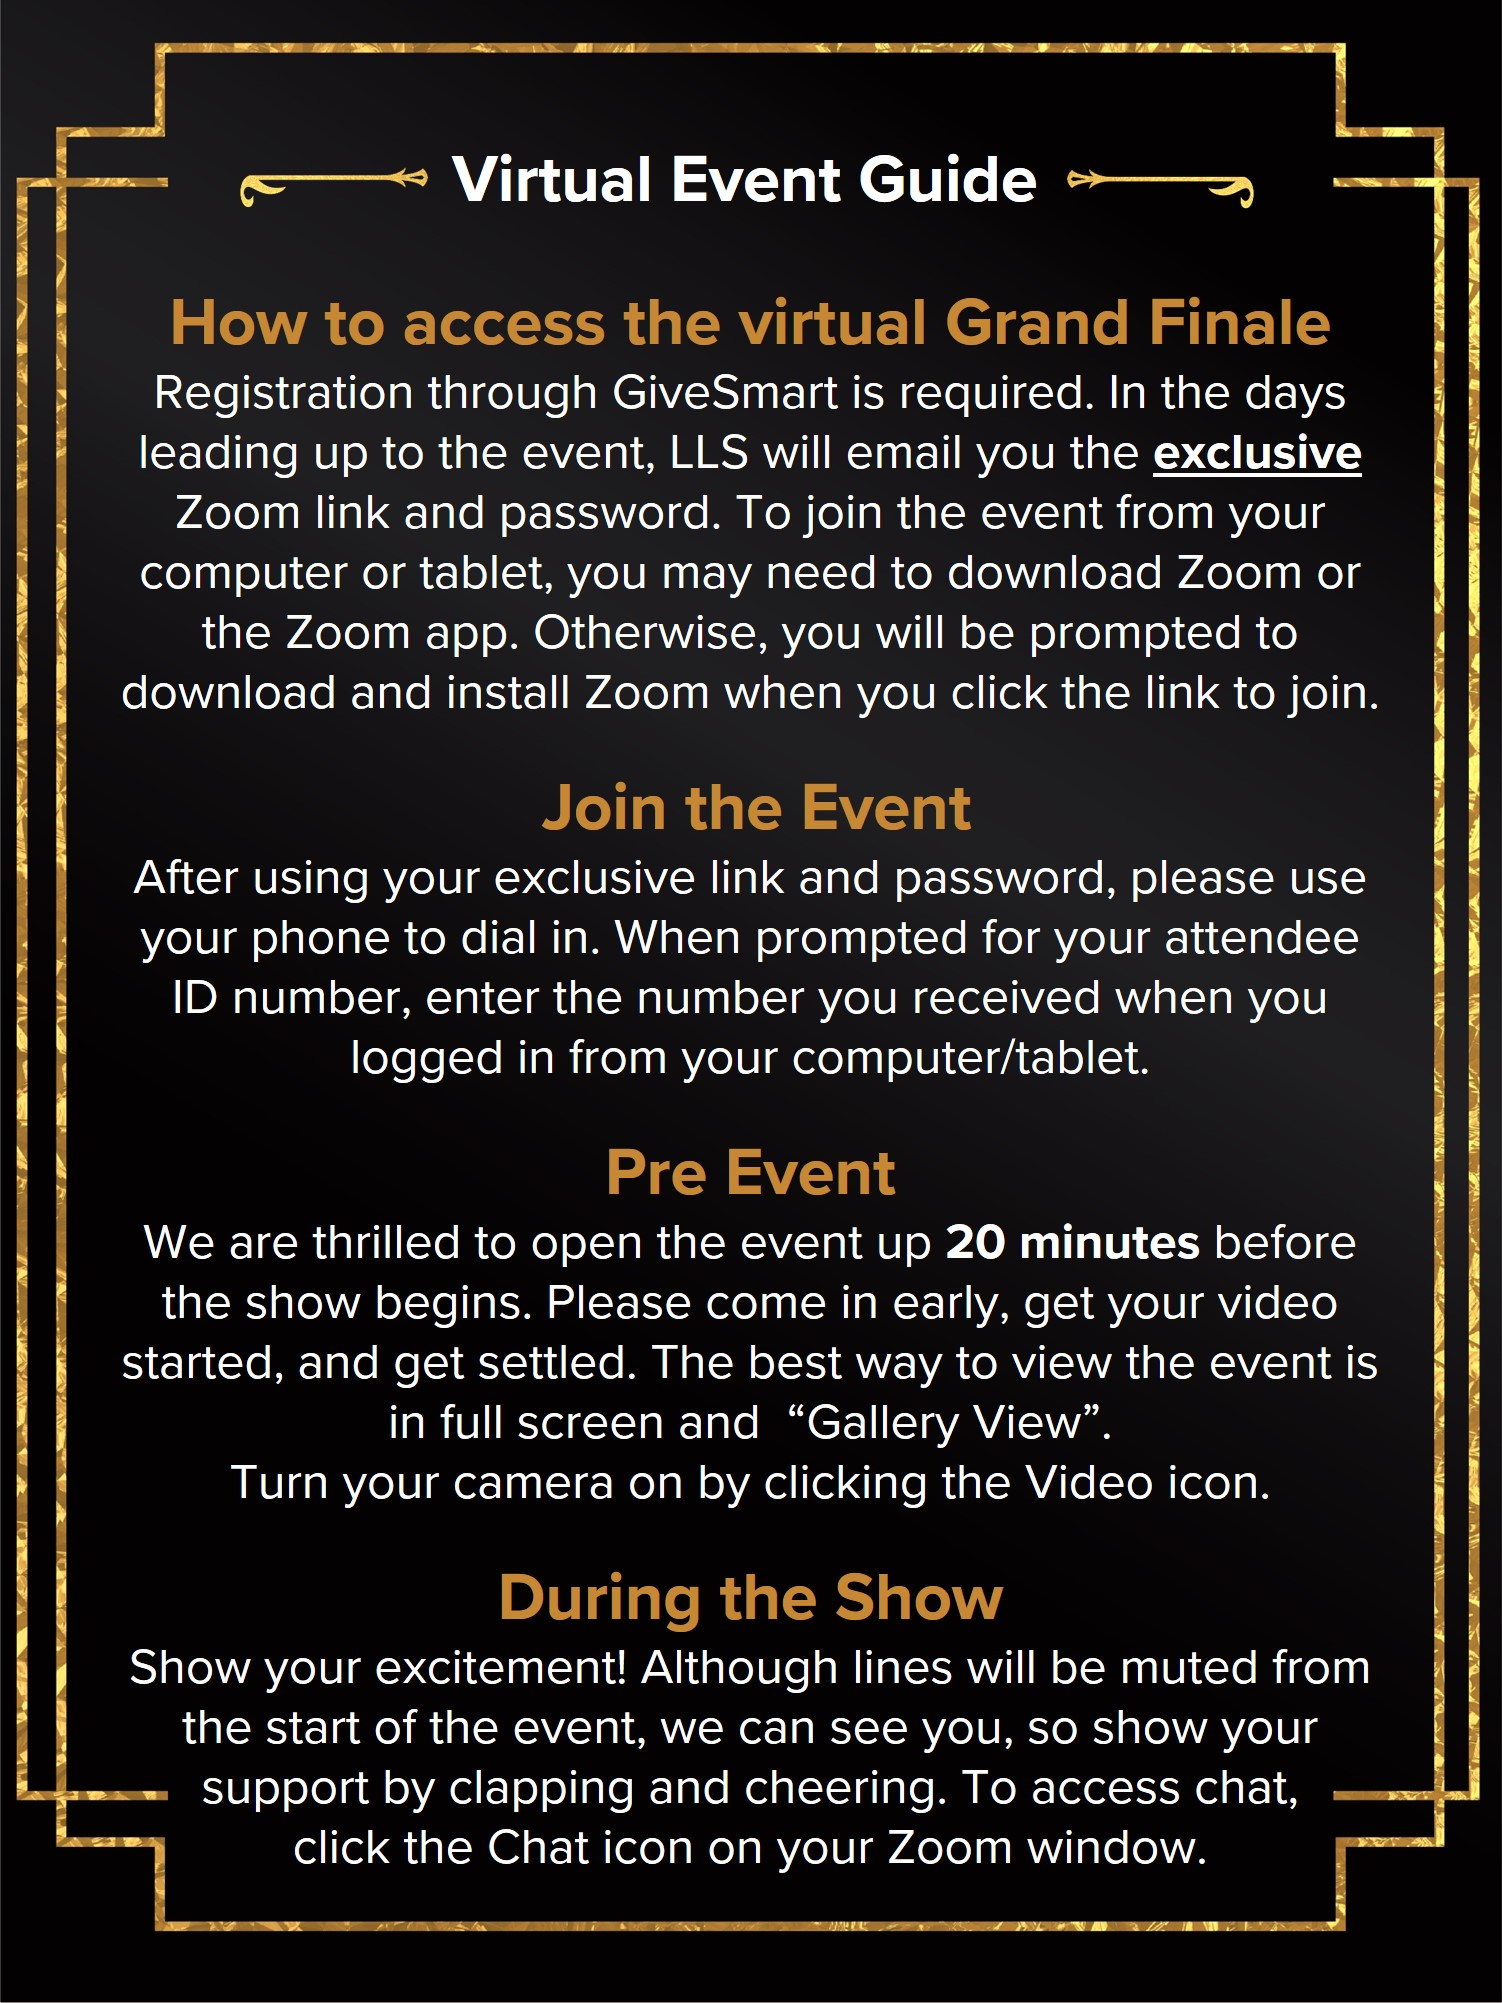 Virtual event guide